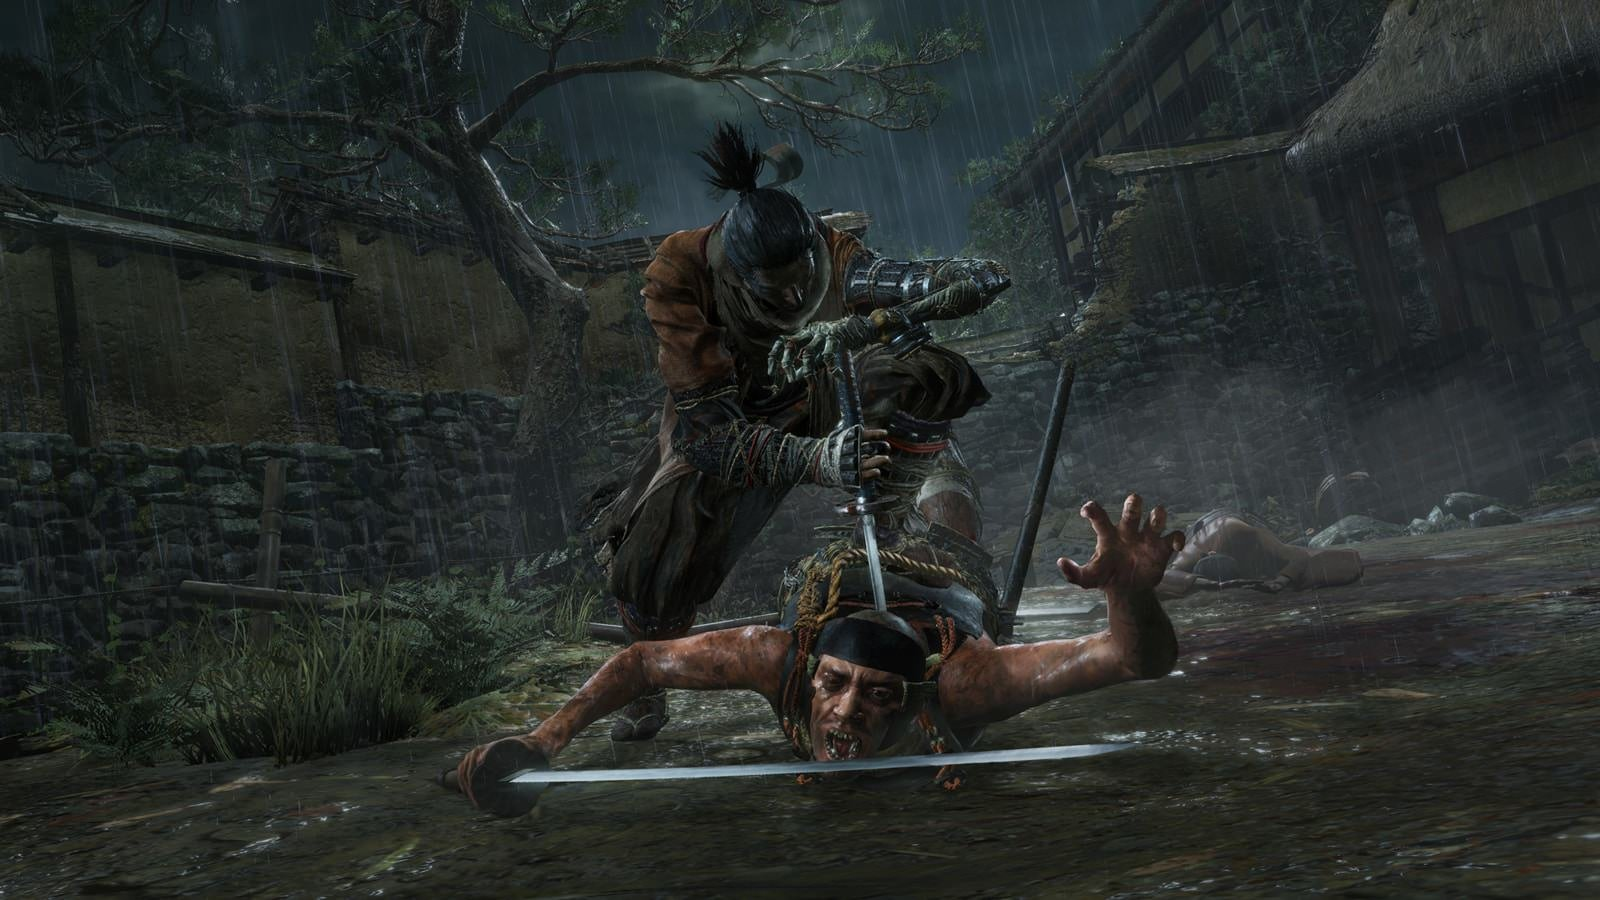 sekiro-backstab-finisher-gamescom-shadows-die-twice